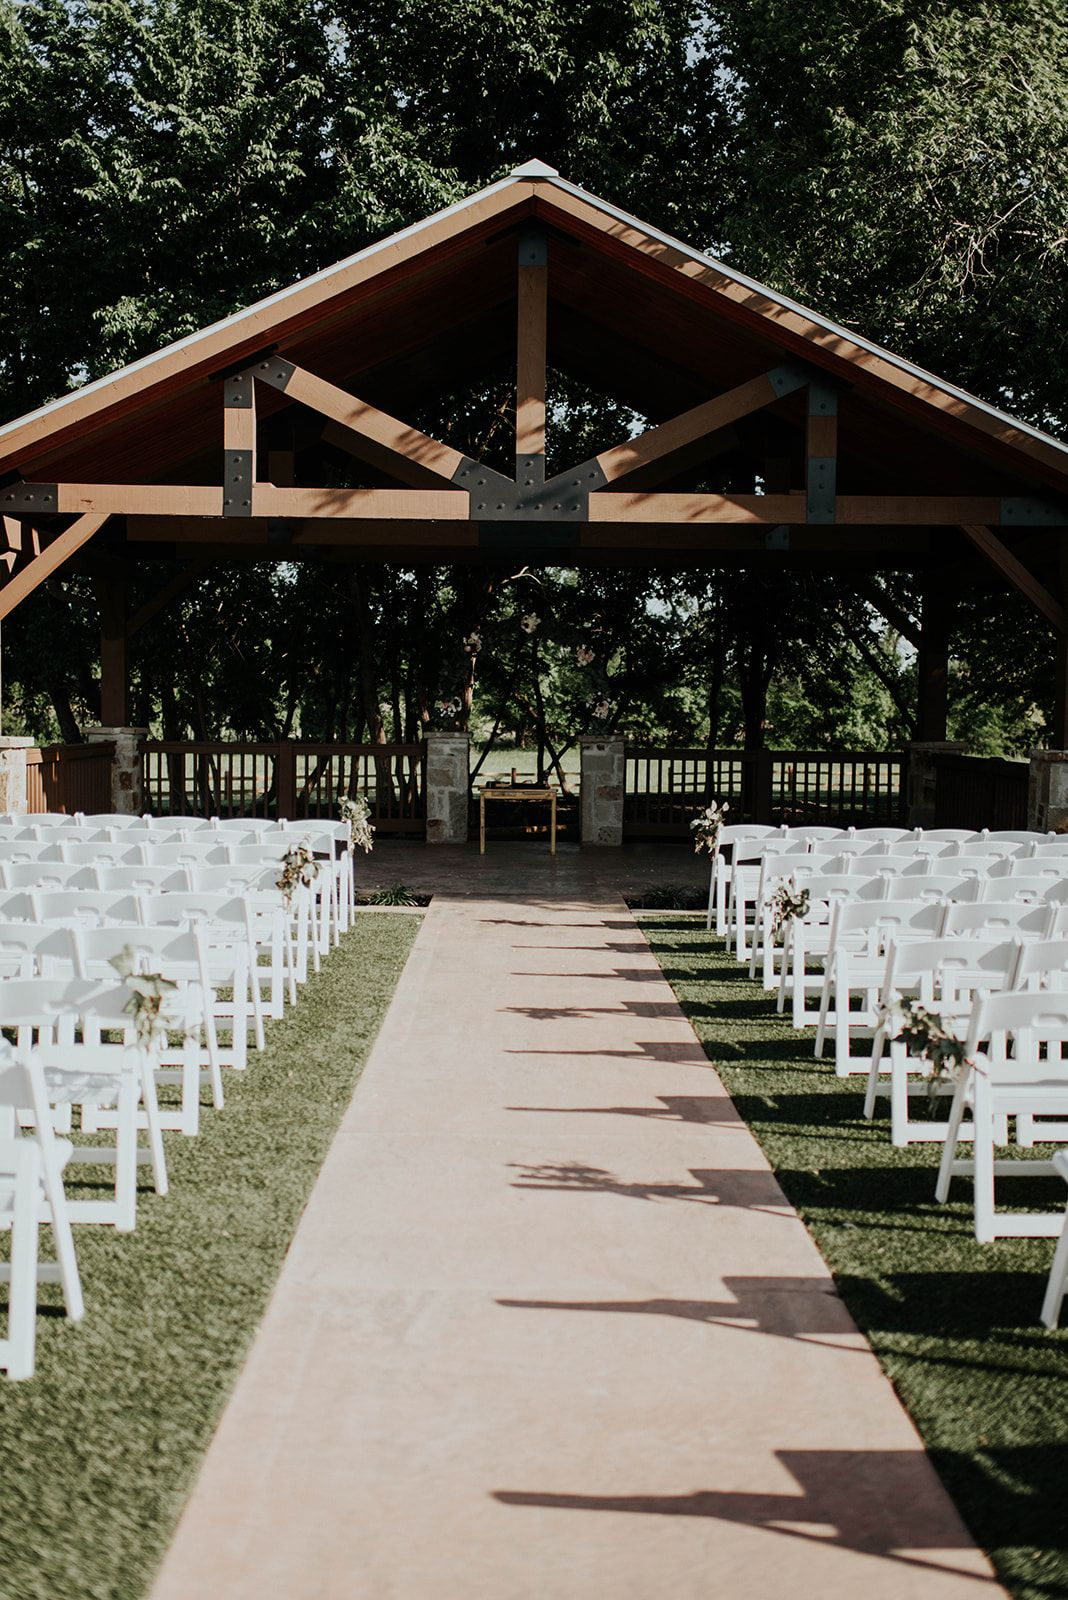 Oklahoma Wedding Venue Bohemian Wedding Venue Okc Wedding Venue Outdoor Oklahoma City Weddin Oklahoma Wedding Venues City Wedding Venues Wedding Venues